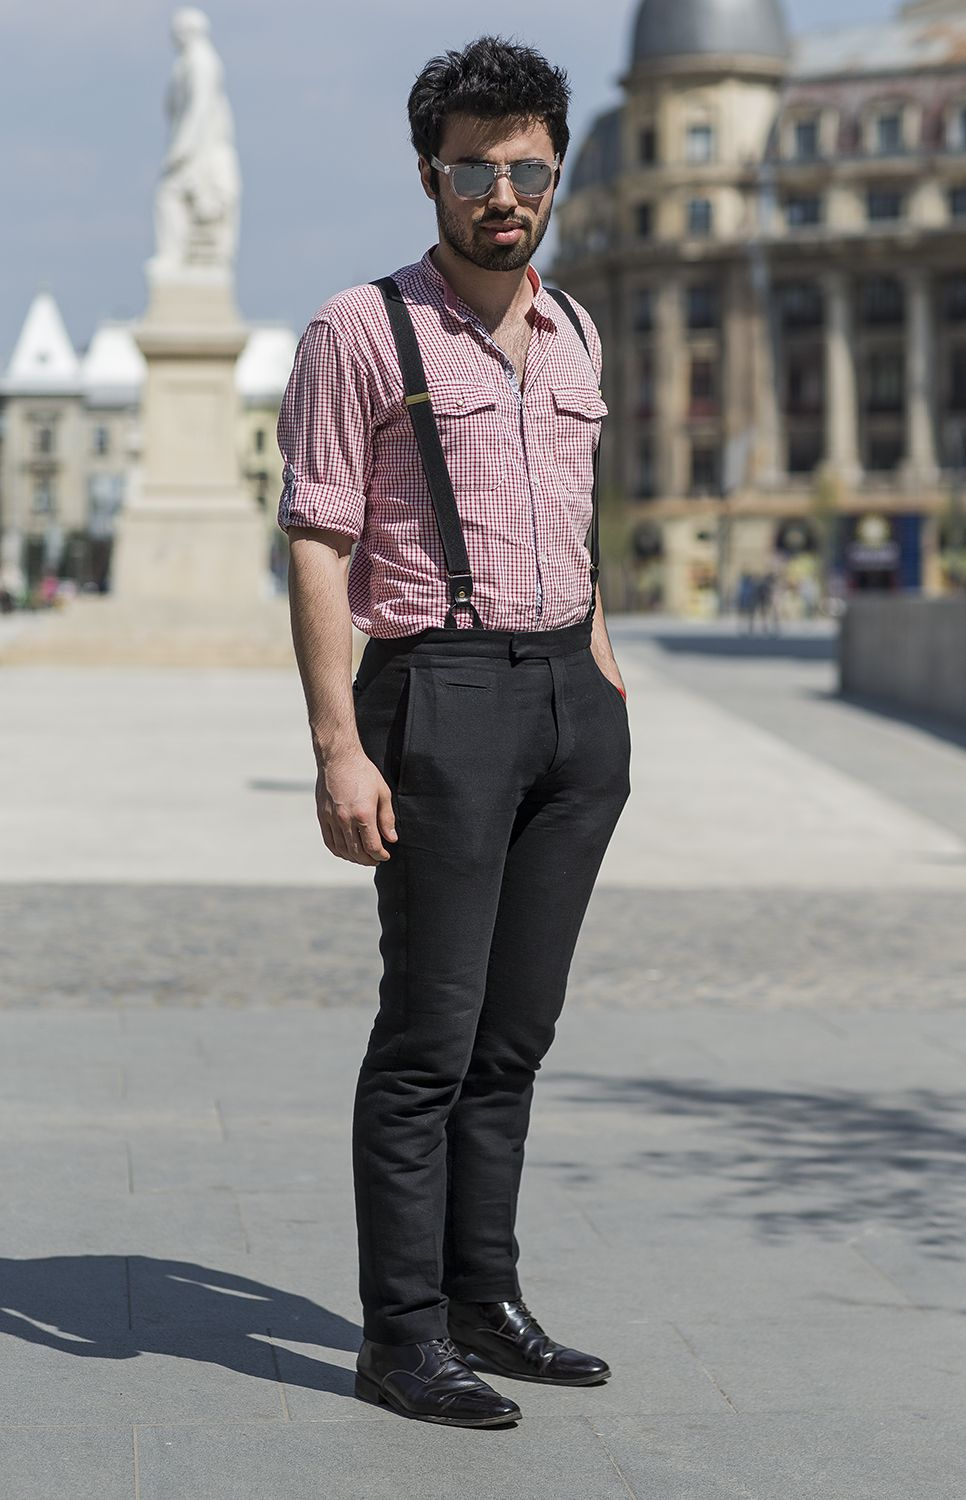 Street fashion men bucharest street style men Fashion street style pinterest